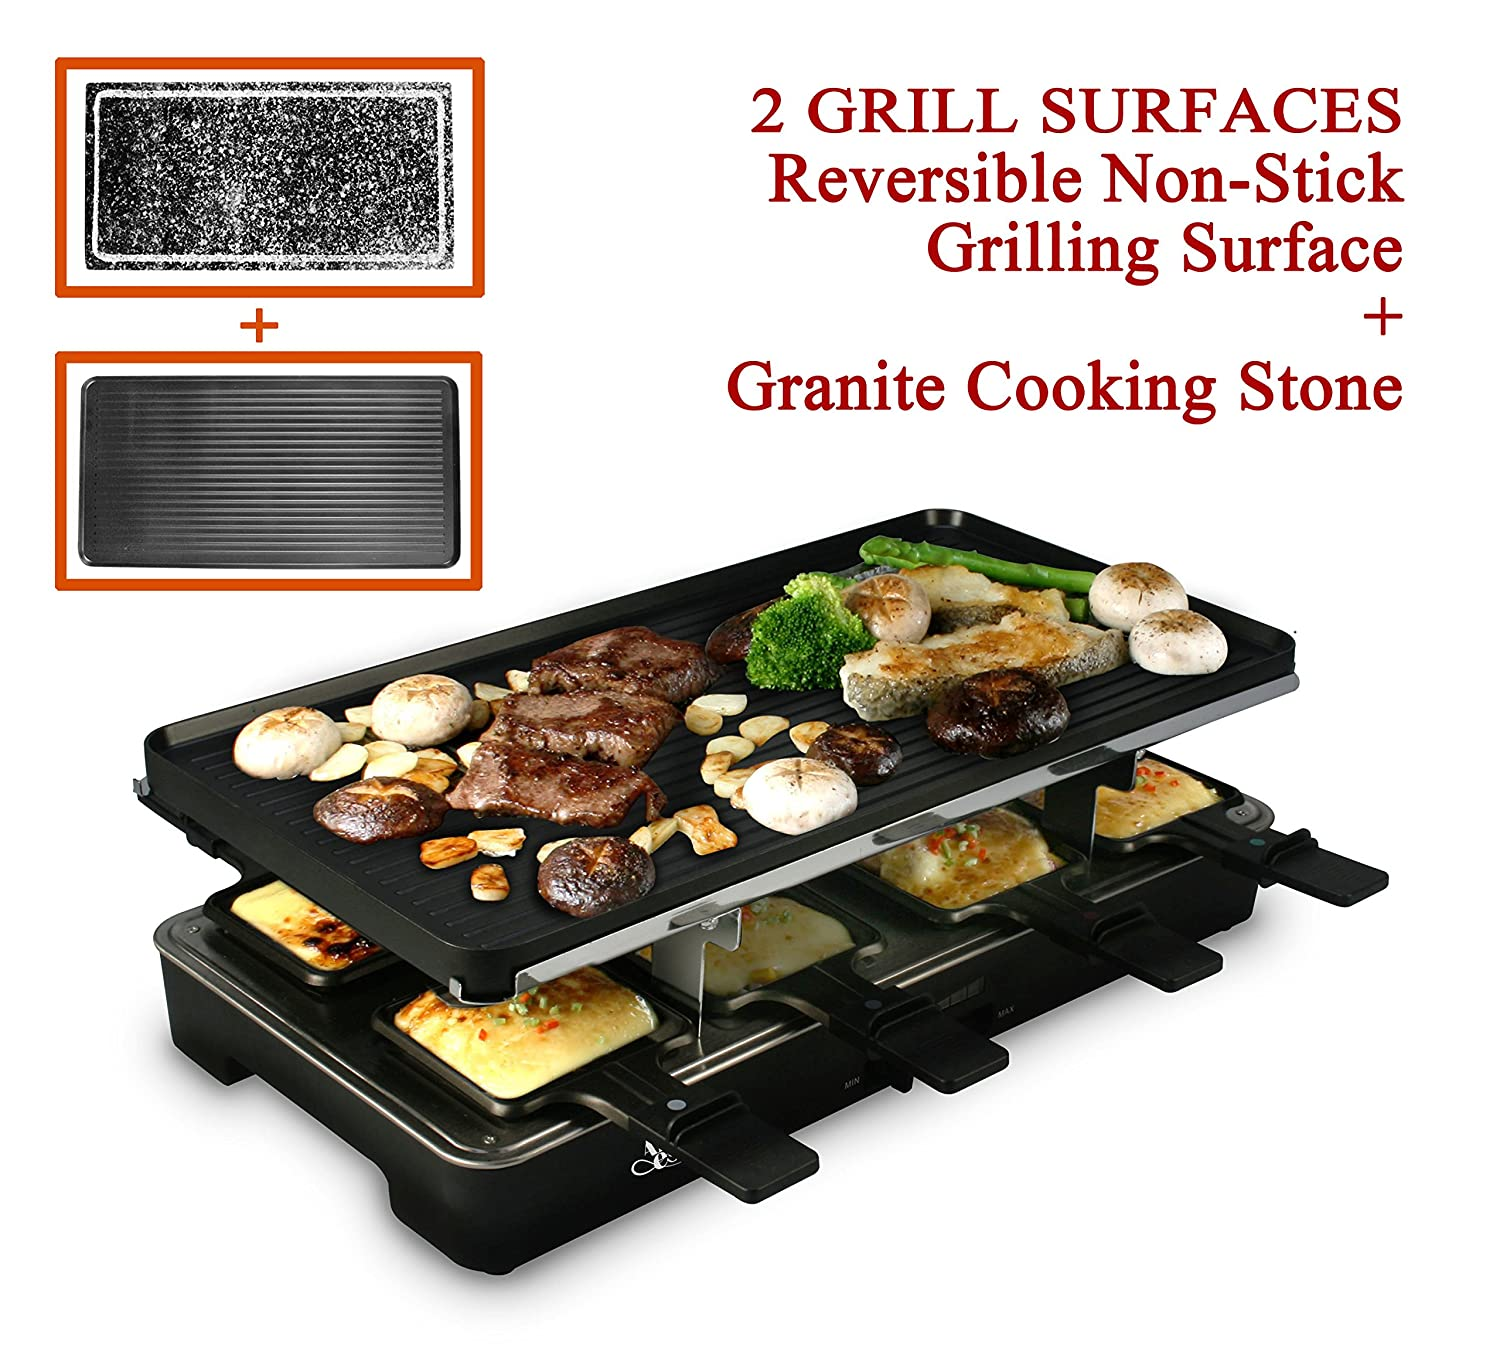 (Cast Aluminum Reversible Grill Plate and High Density Granite Grill Stone), Serve 8 Persons Compact GRILL REVIEW